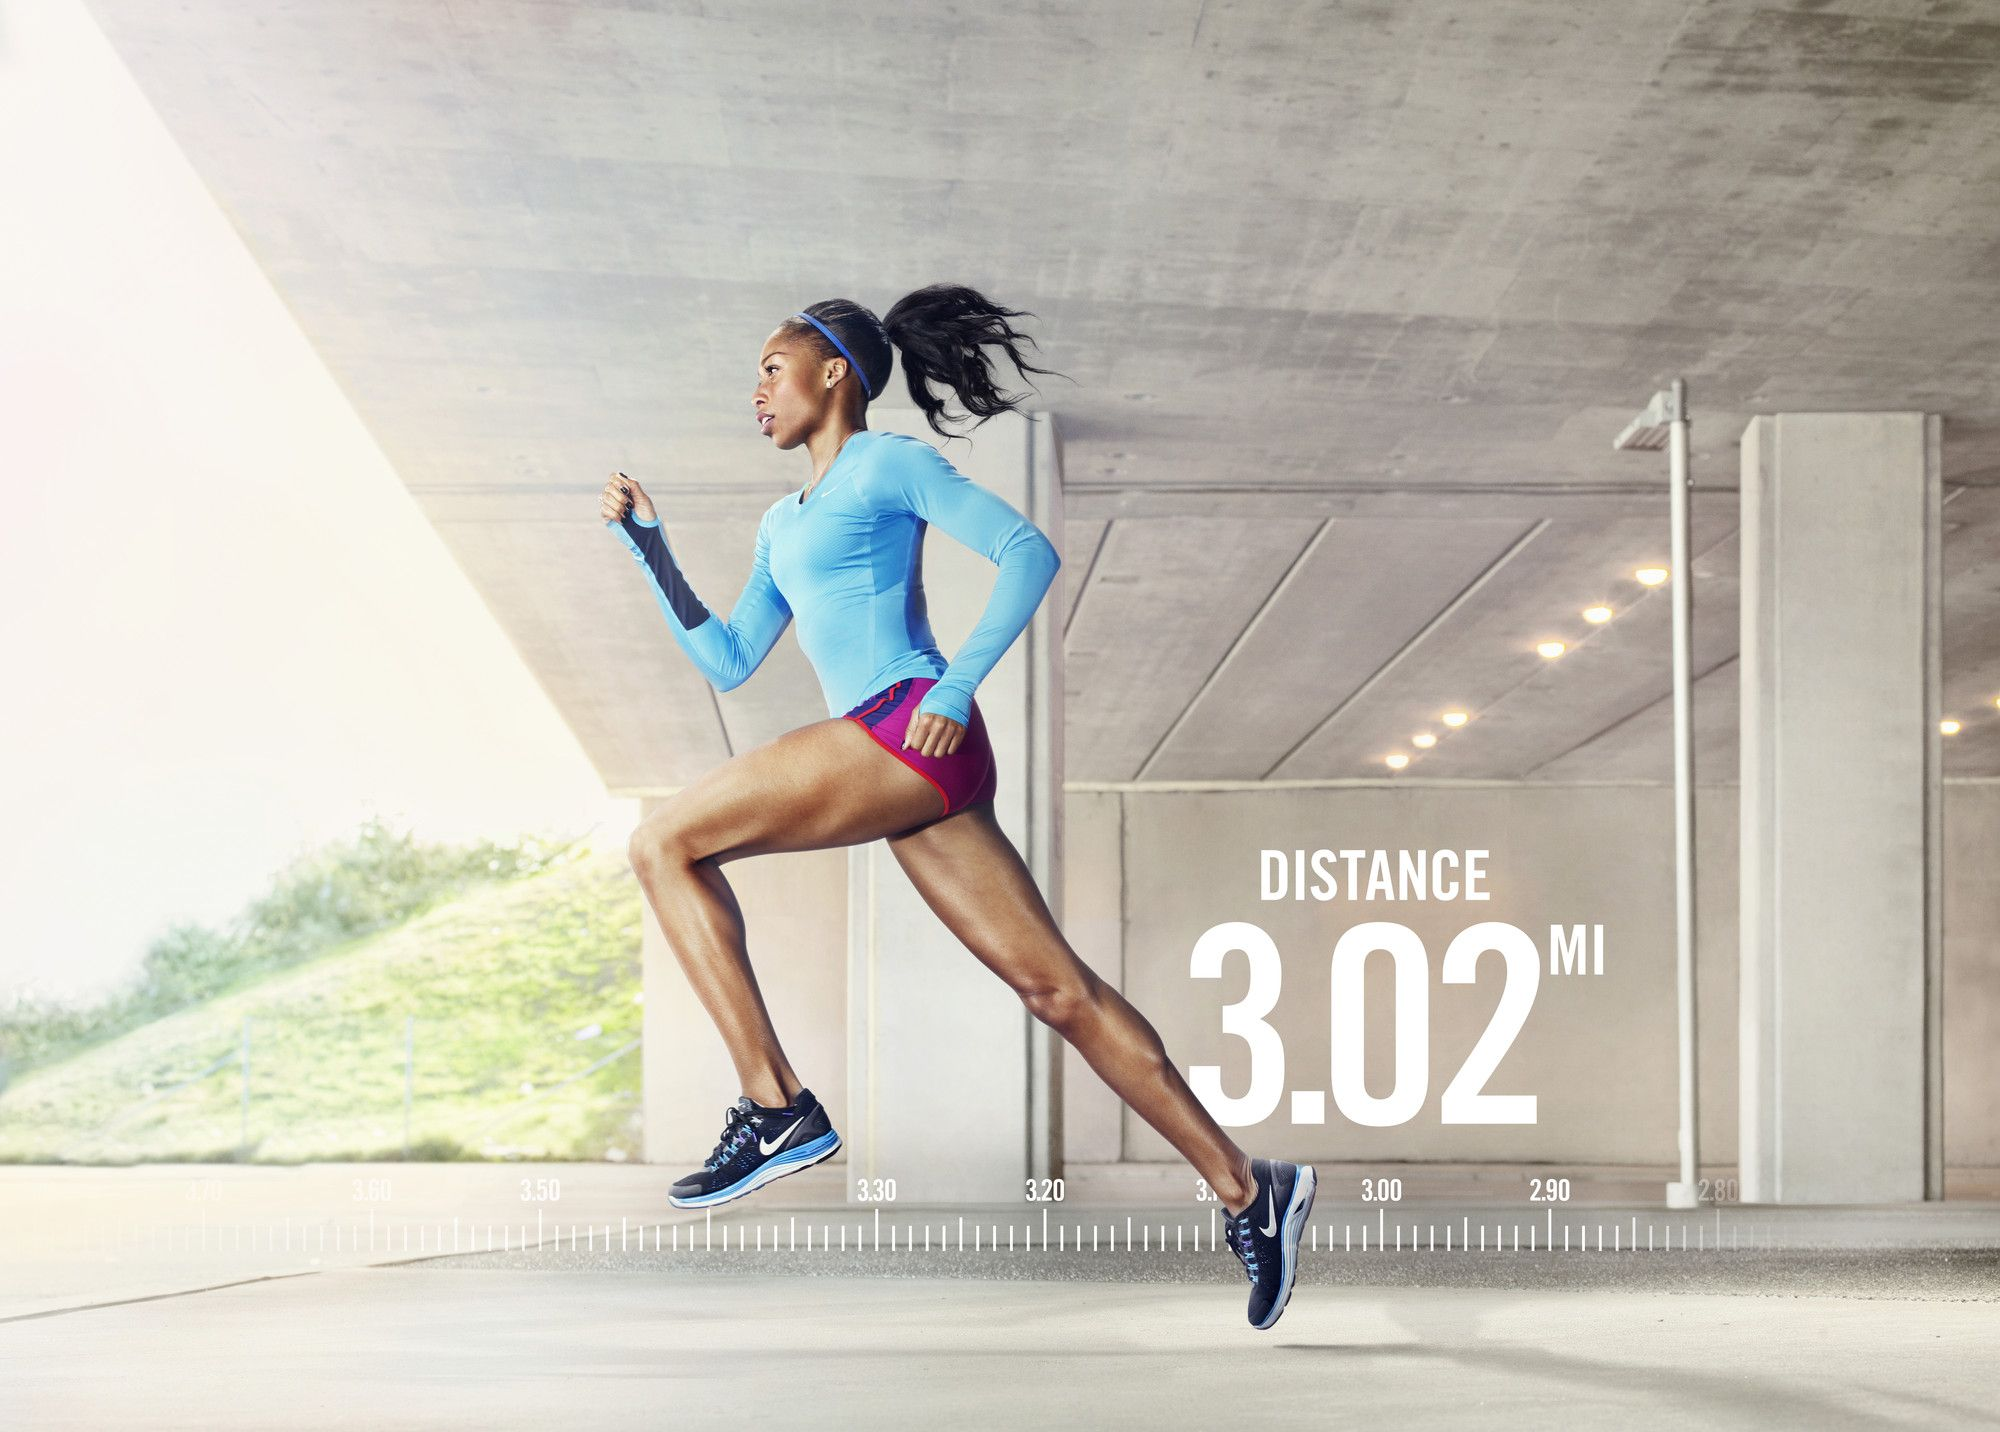 nike plus data - Google Search | Nike Stuffs | Pinterest ...